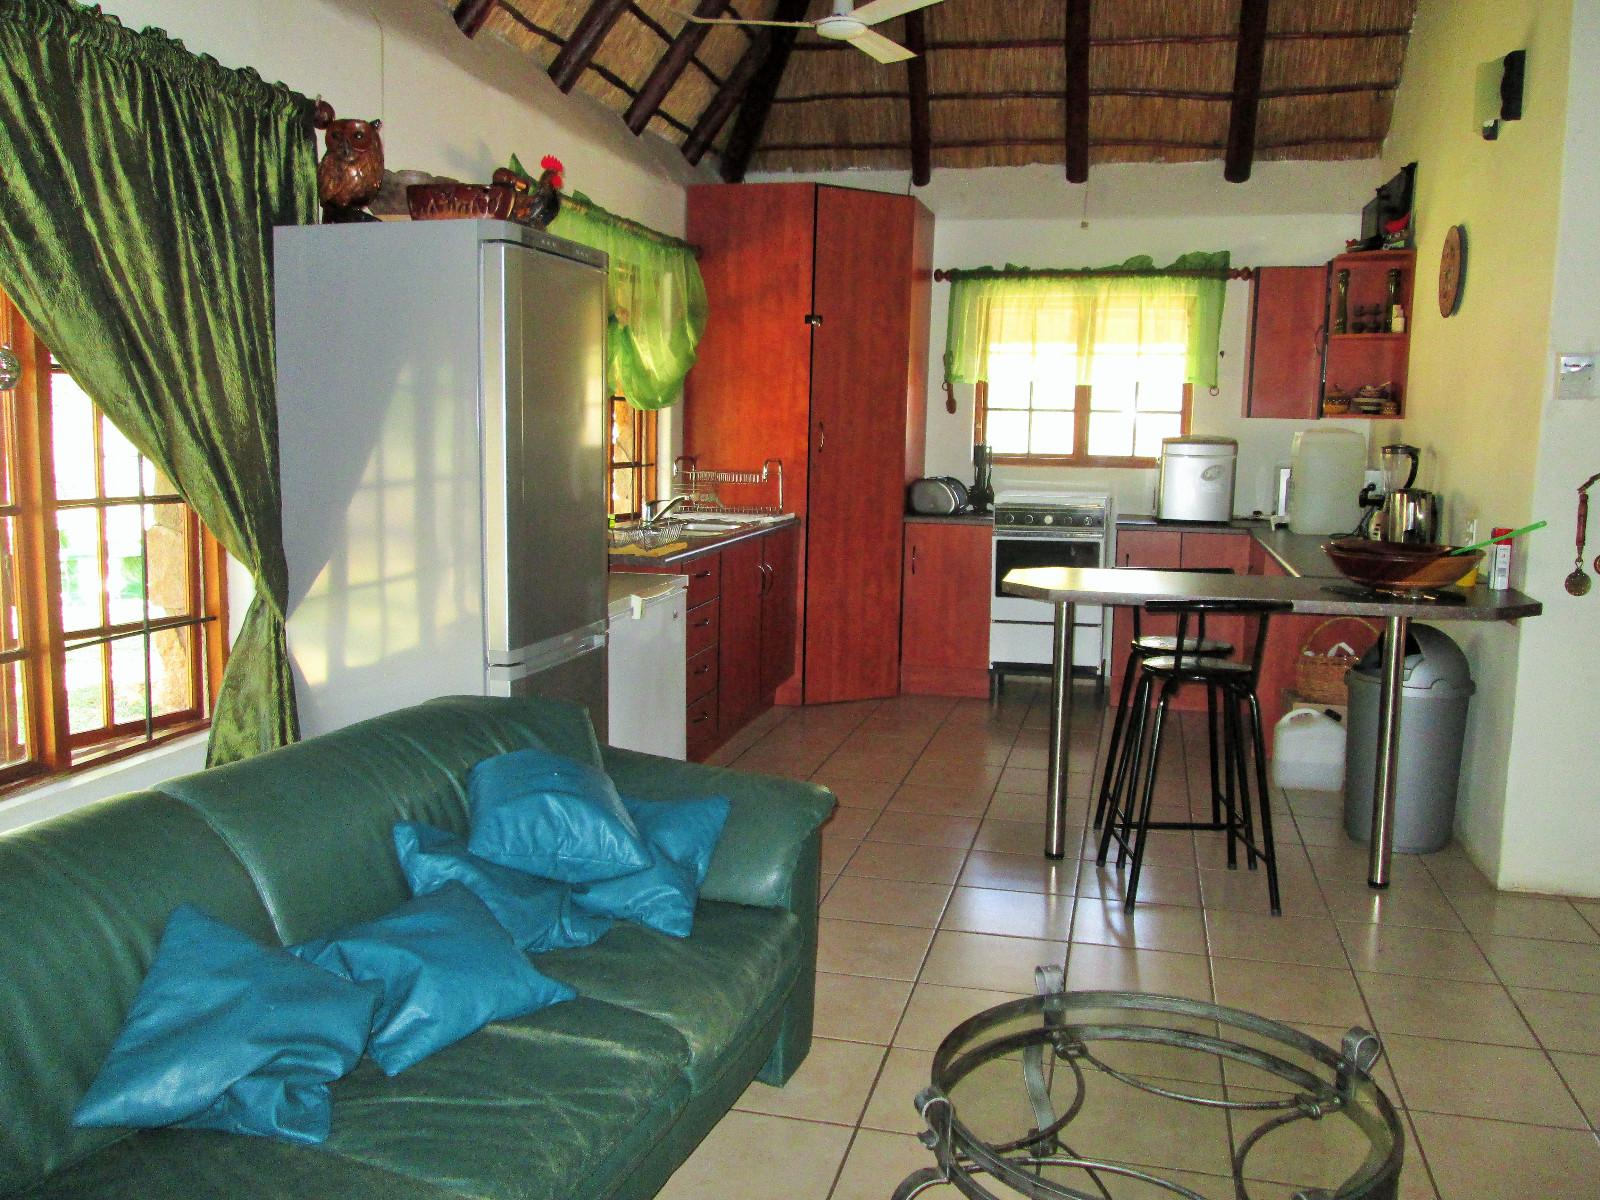 Hoedspruit property for sale. Ref No: 13242593. Picture no 13